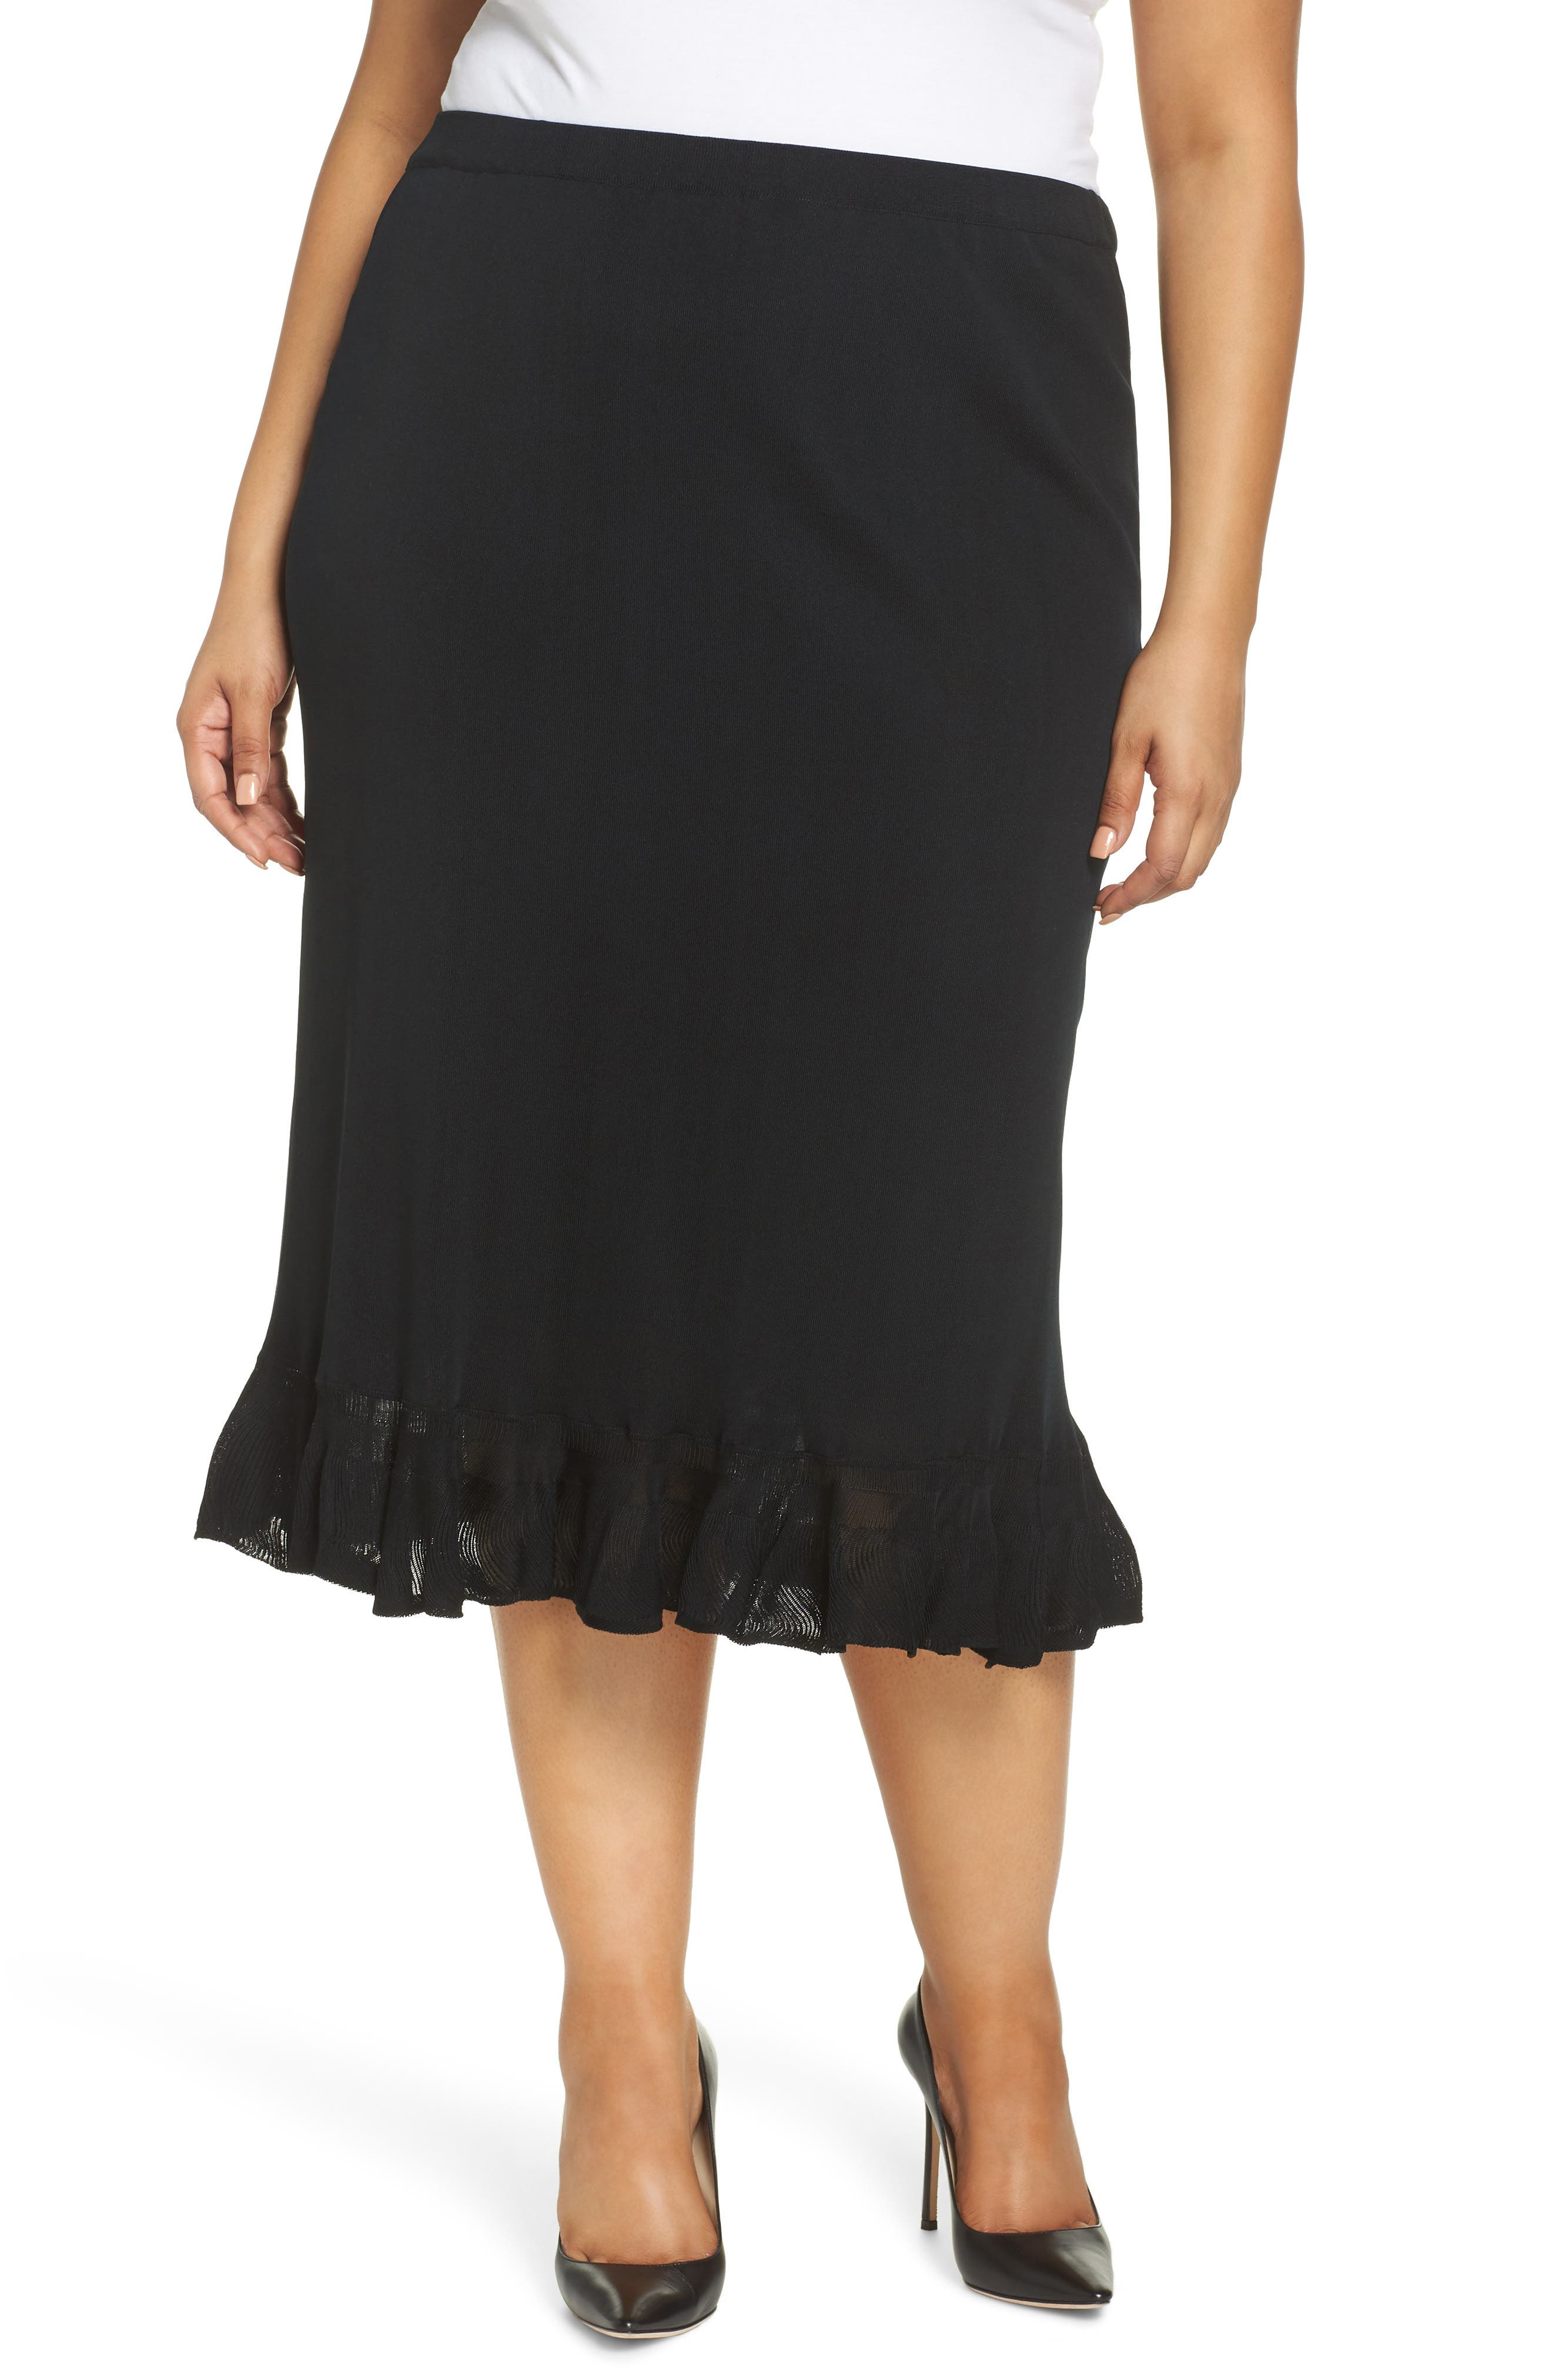 Clothing, Shoes & Accessories Women's Clothing Jason Wu Womens Light/dark Gray Textured Print Above-knee Pencil Skirt 8 New Last Style